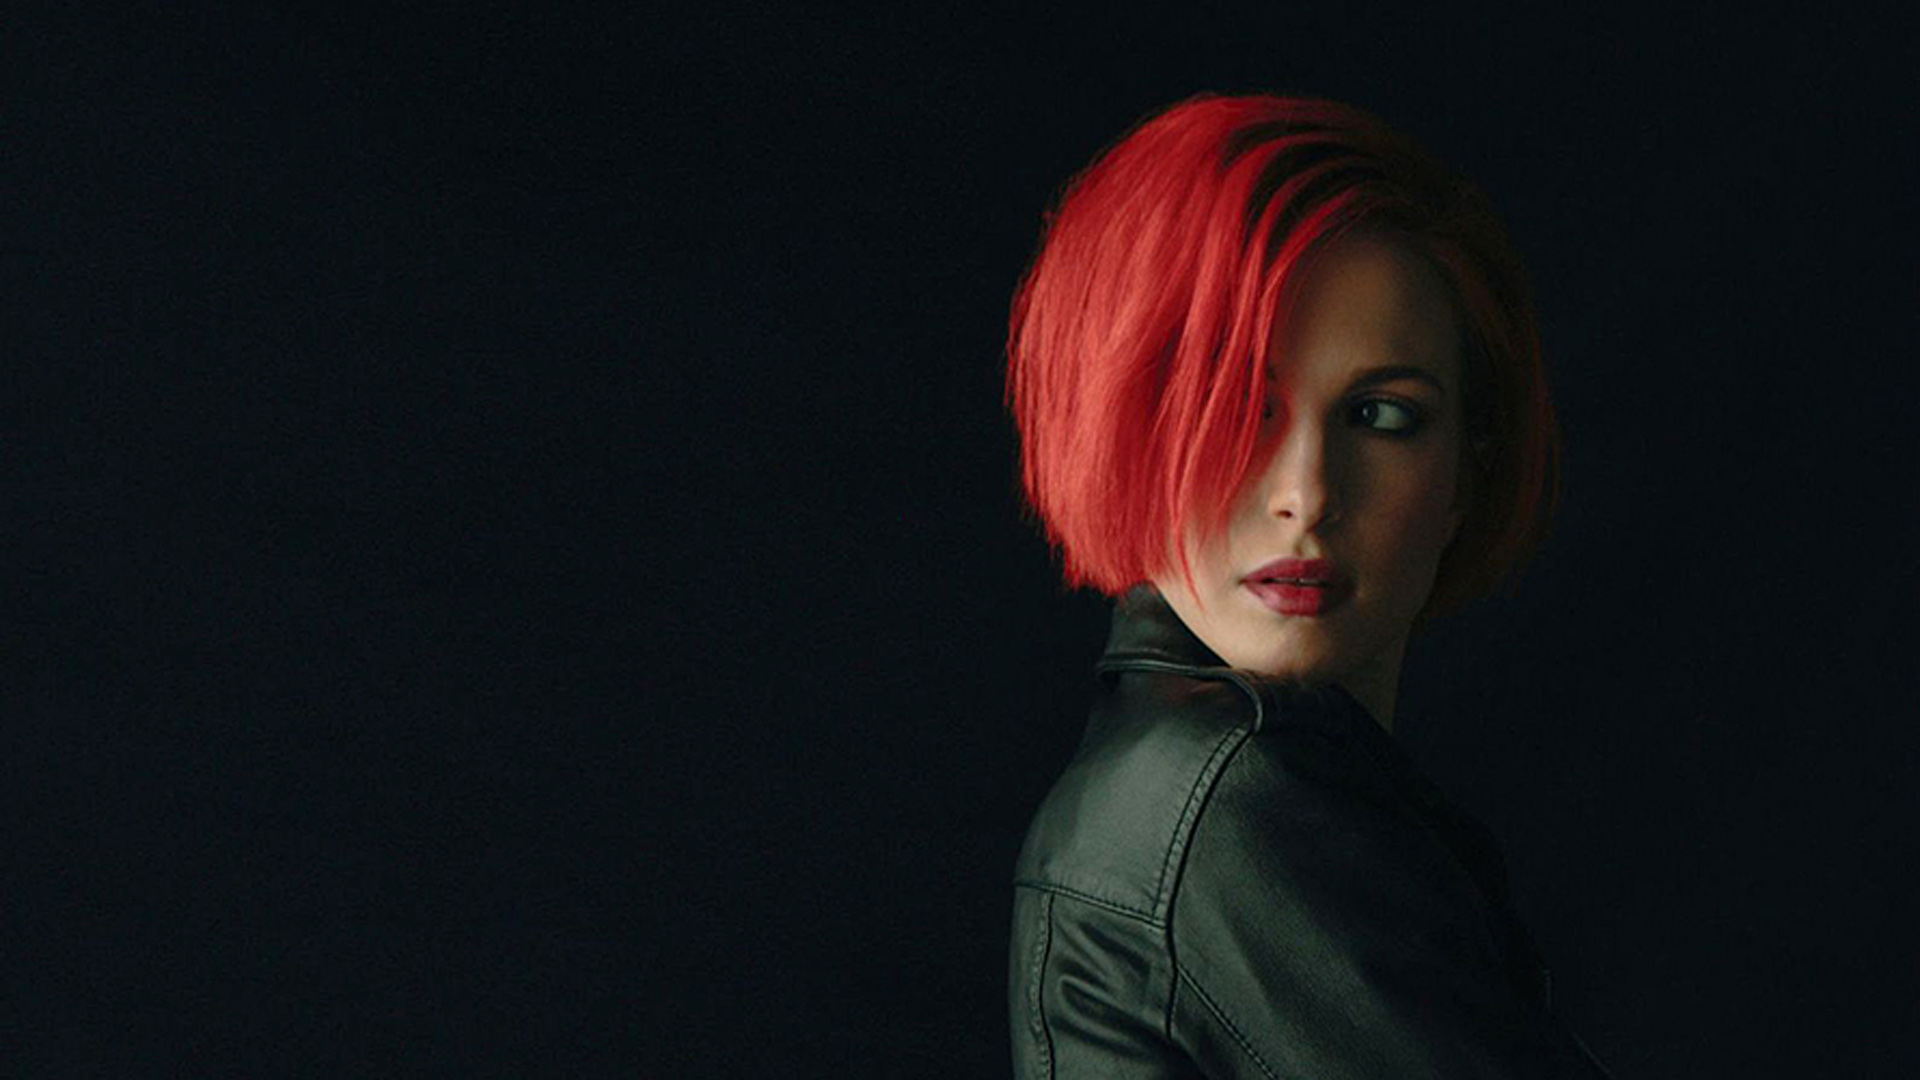 Hayley Williams Wallpapers   HD HdCoolWallpapersCom 1920x1080